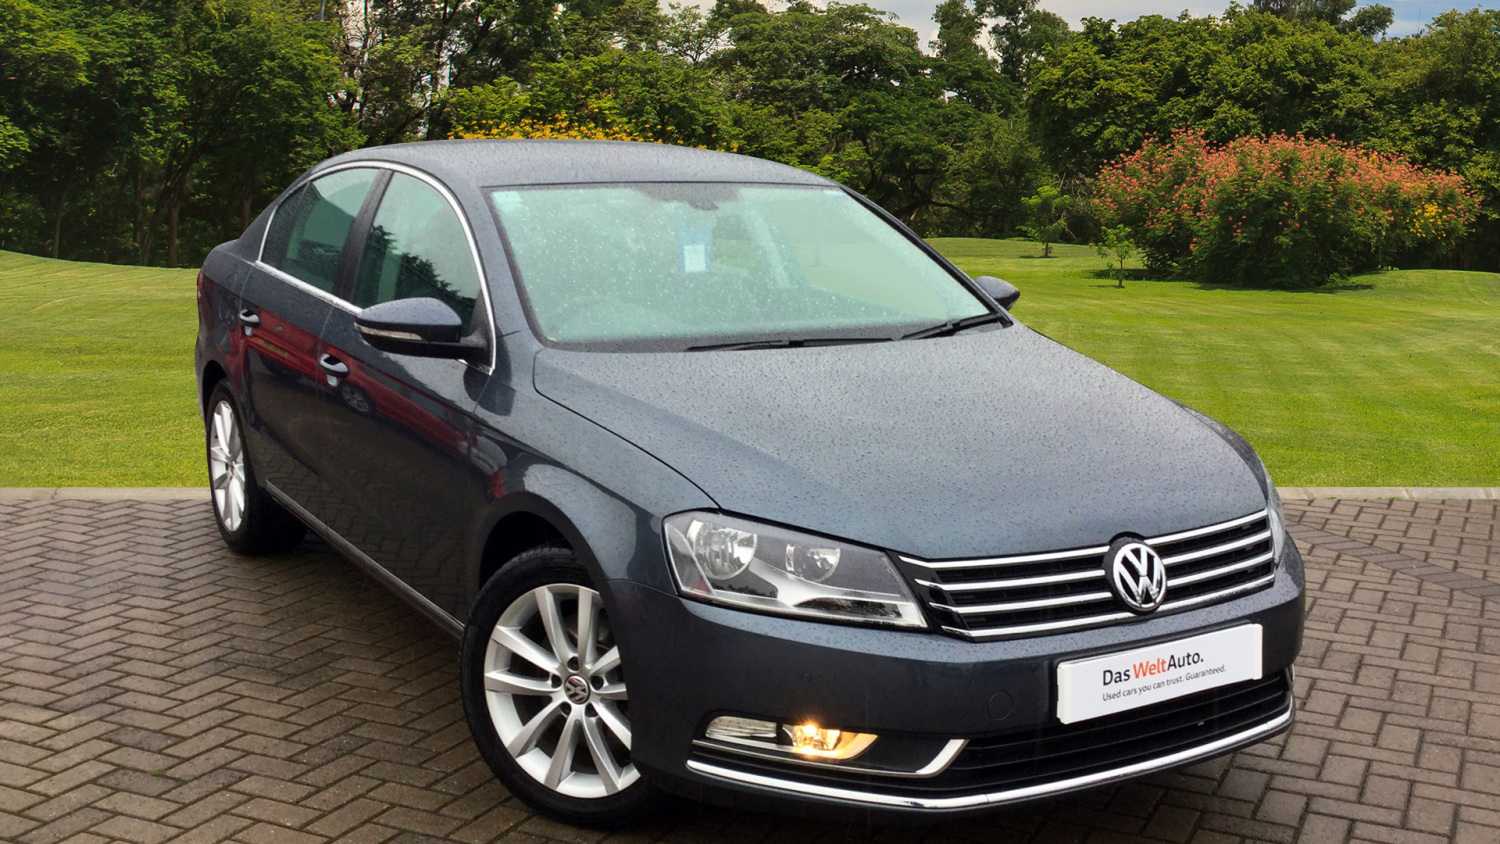 used volkswagen passat 2 0 tdi bluemotion tech executive 4dr diesel saloon for sale bristol. Black Bedroom Furniture Sets. Home Design Ideas